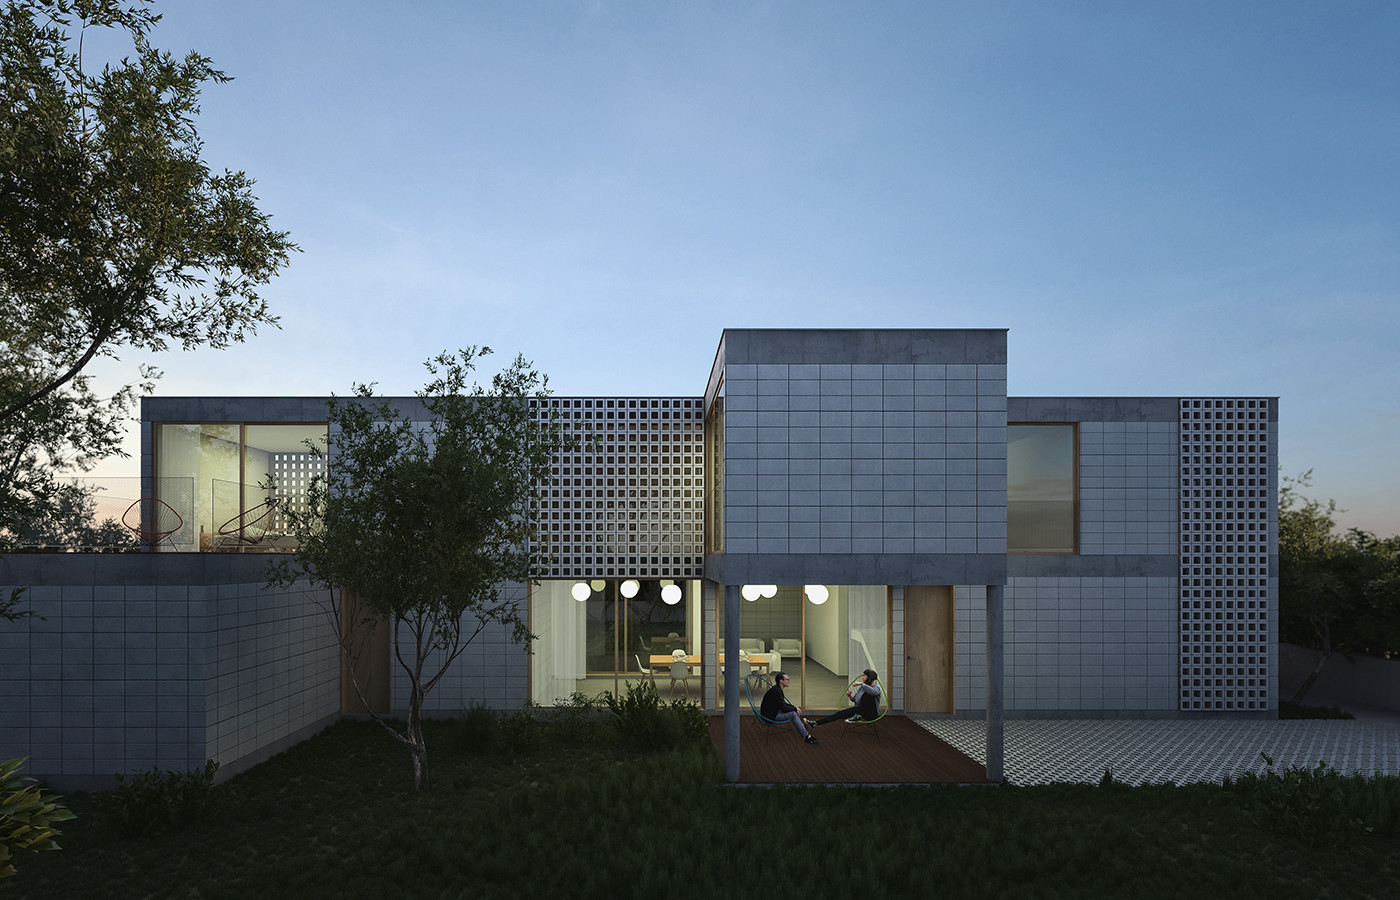 Module House open source architectural plans for modular buildings - designing